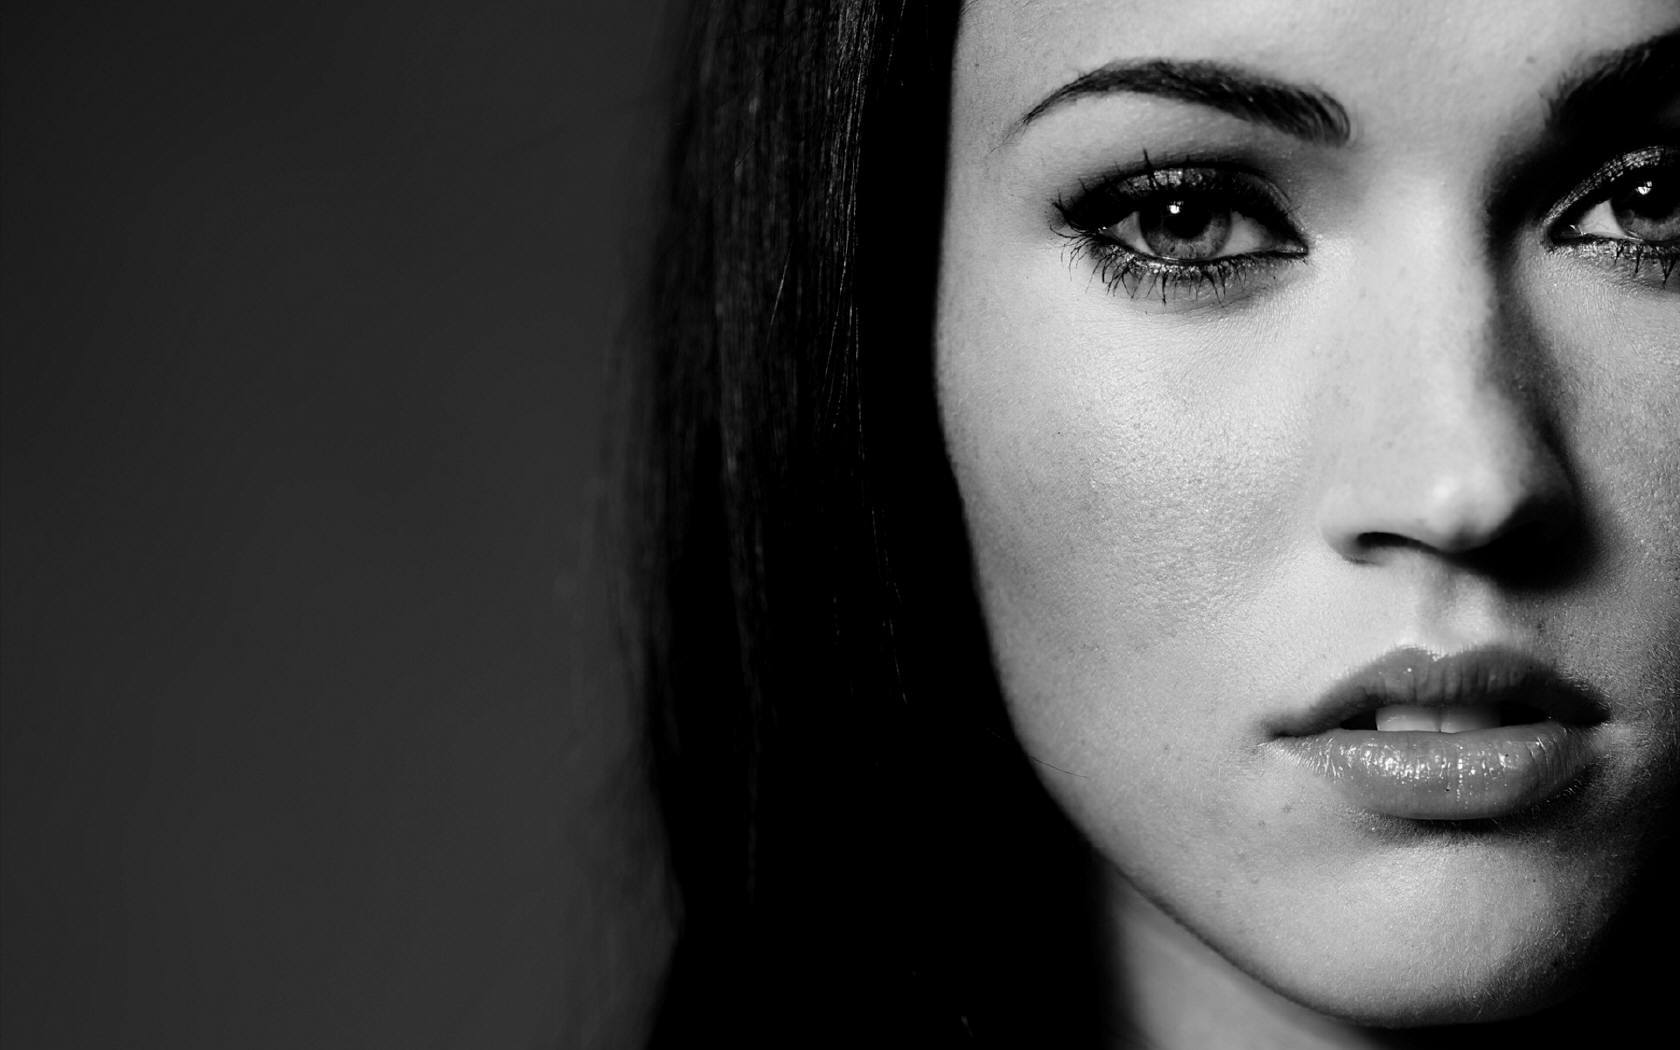 1680x1050 Megan Fox BW desktop PC and Mac wallpaper 1680x1050